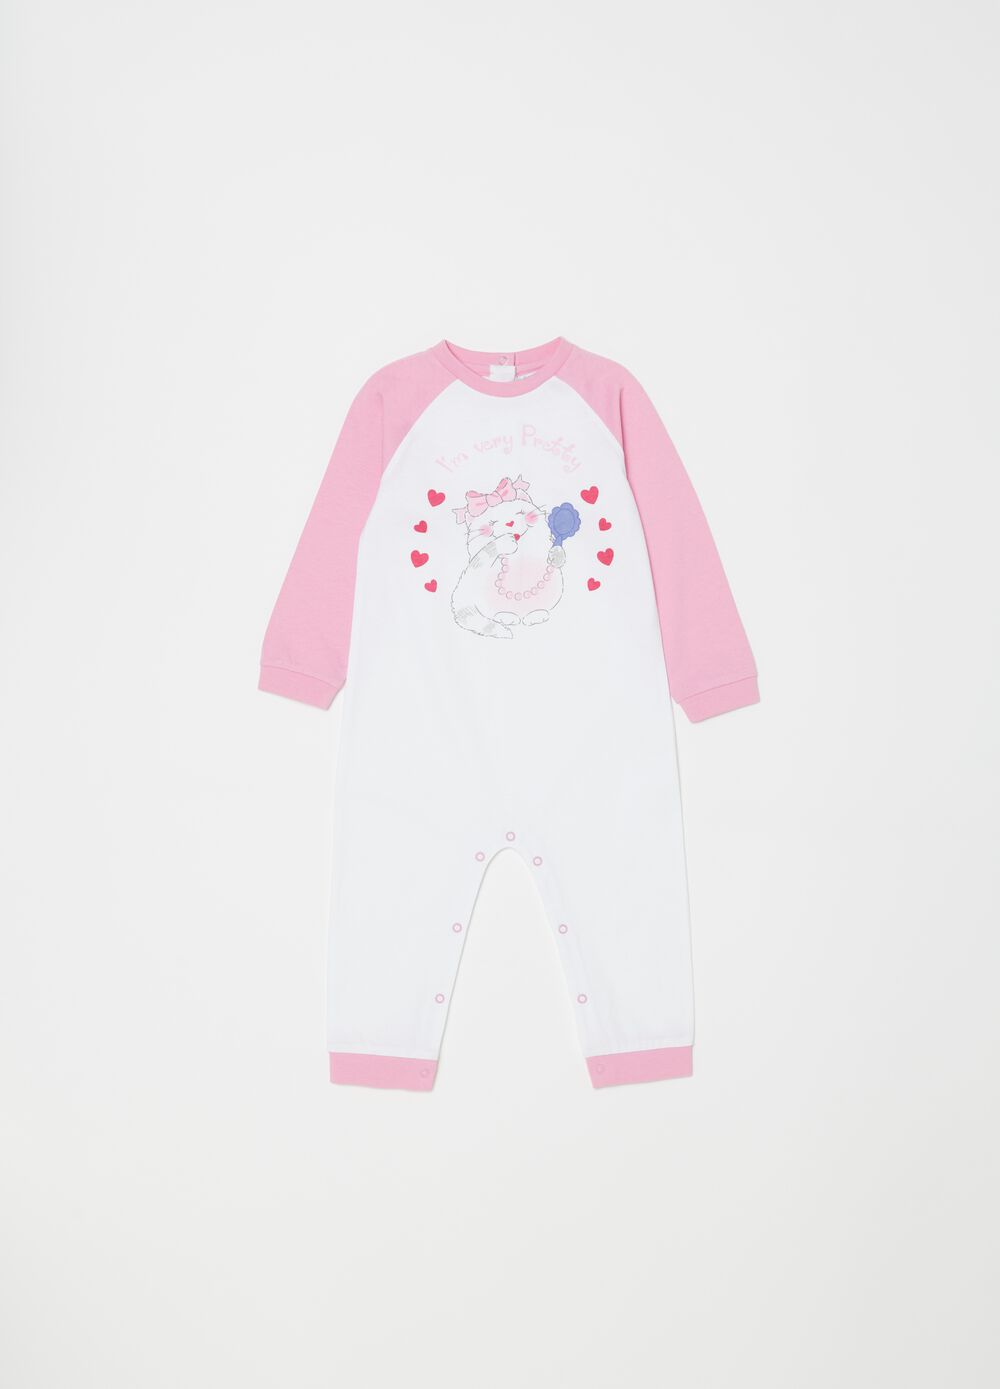 Biocotton sleepsuit with kitten print